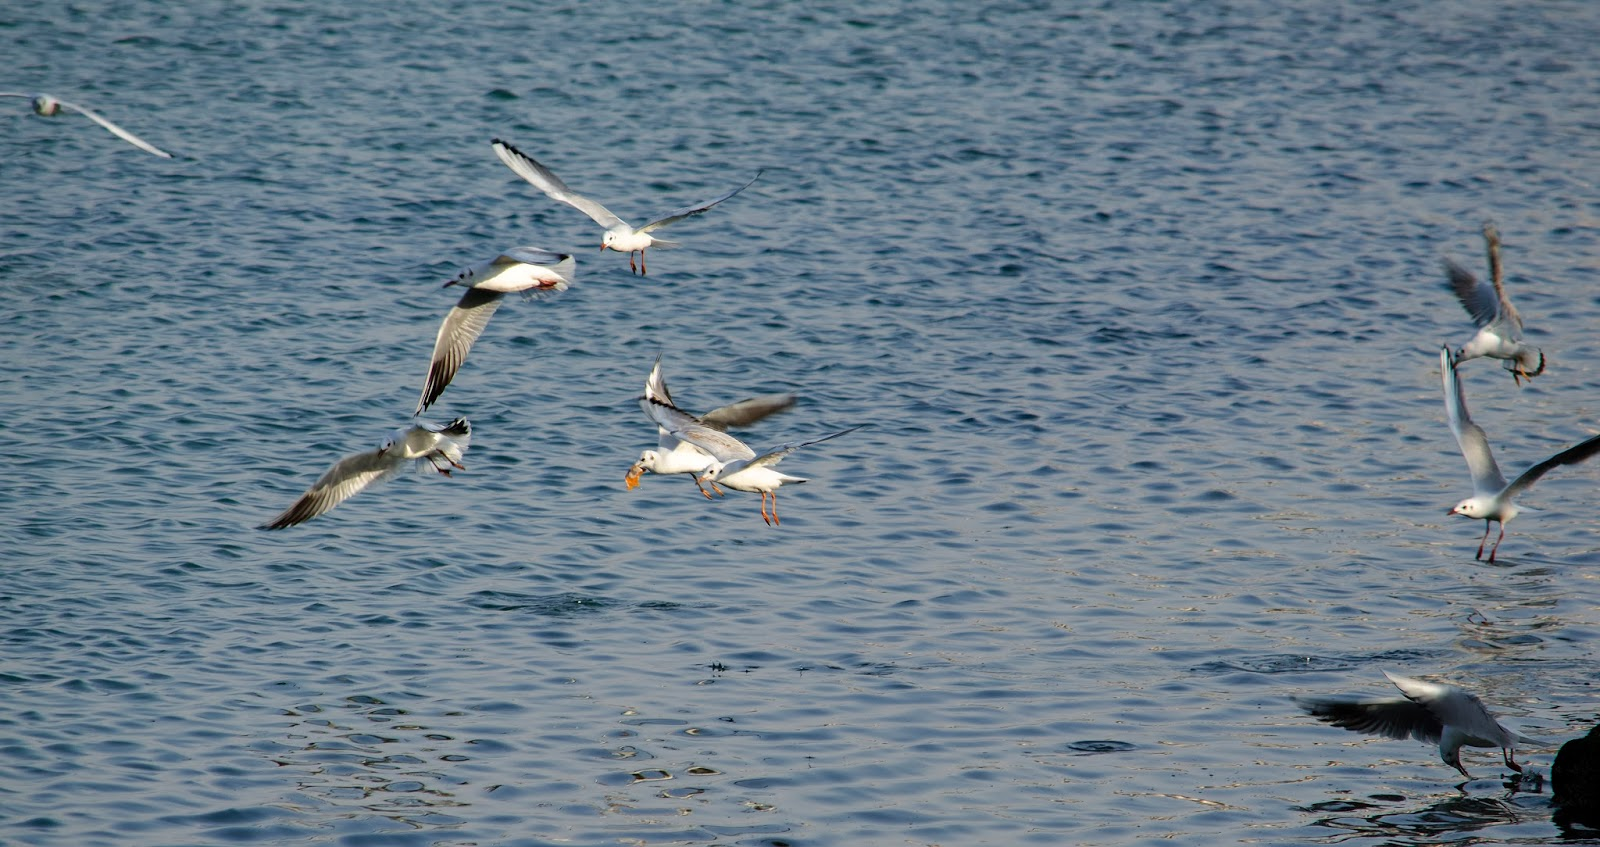 Seagulls fighting over a delicious lunch of fishes - Photo by Adham Al Oka